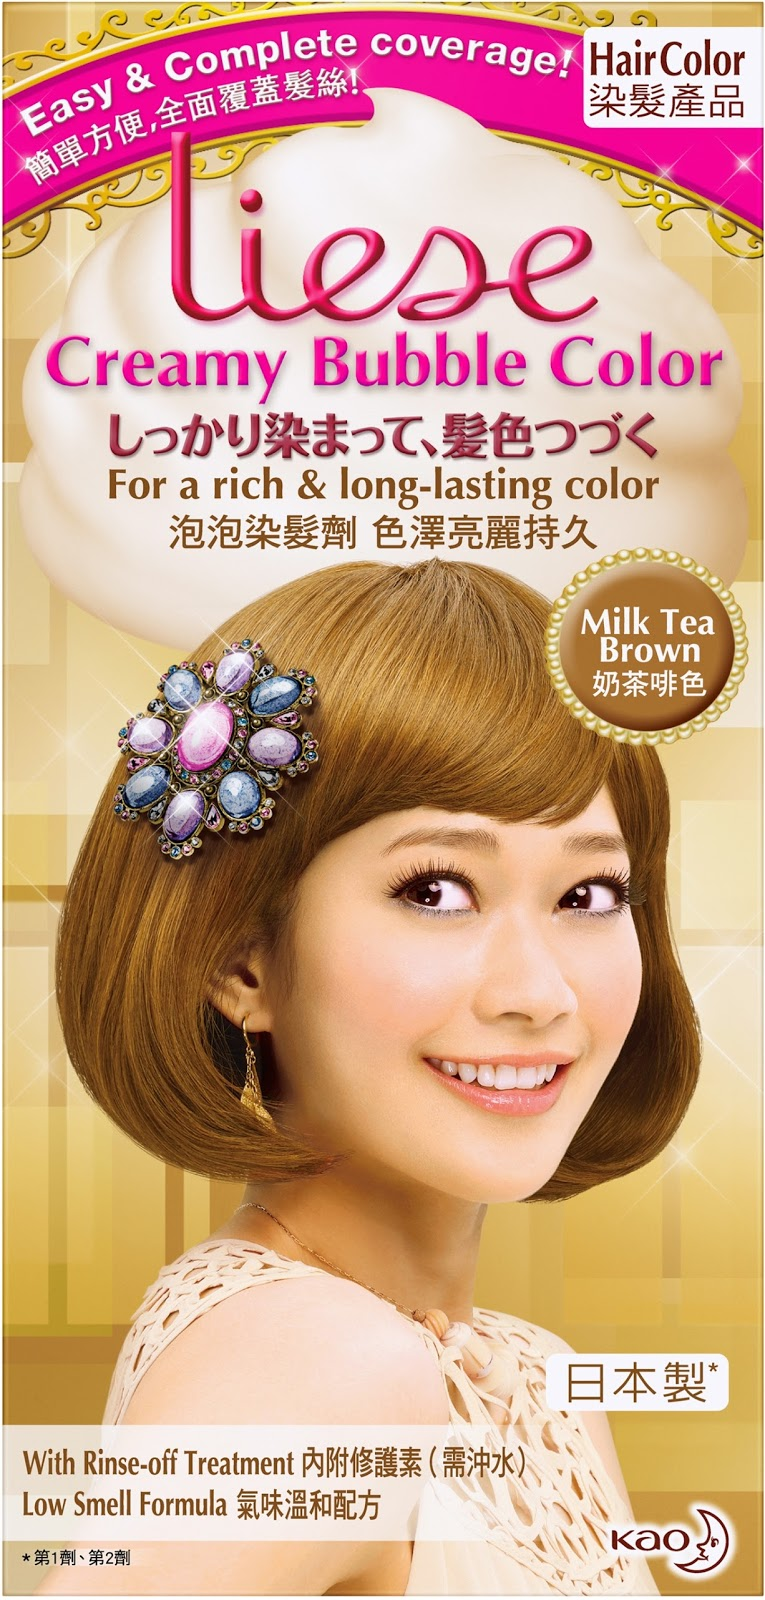 Liese creamy bubble hair color for busy and newbies like me i think liese creamy bubble hair color is the diy hair coloring choice for busy people like myself because it only takes half an hour to finish and because solutioingenieria Gallery